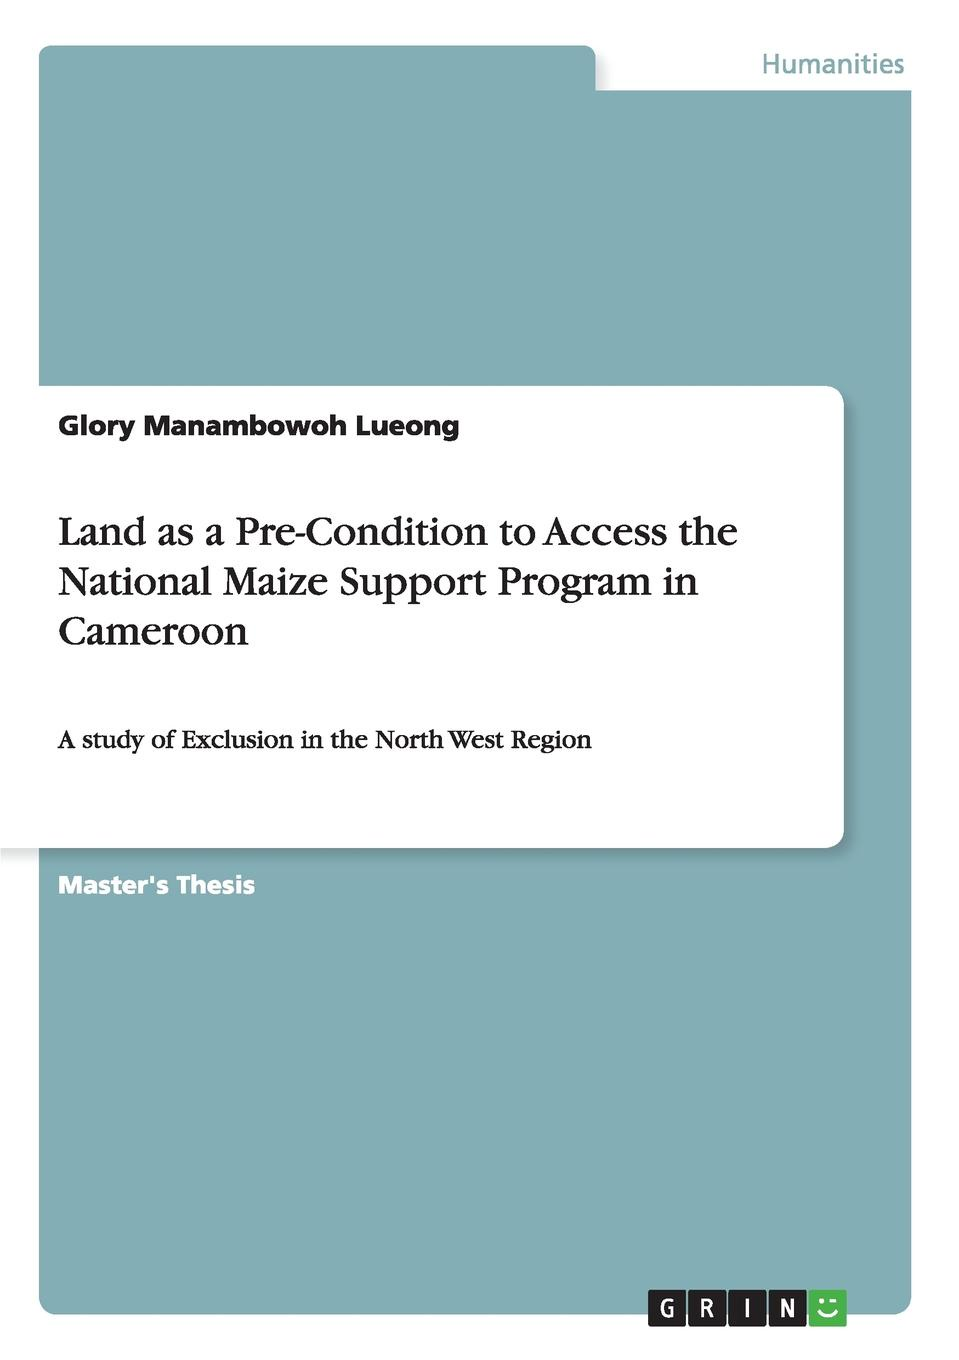 Glory Manambowoh Lueong Land as a Pre-Condition to Access the National Maize Support Program in Cameroon